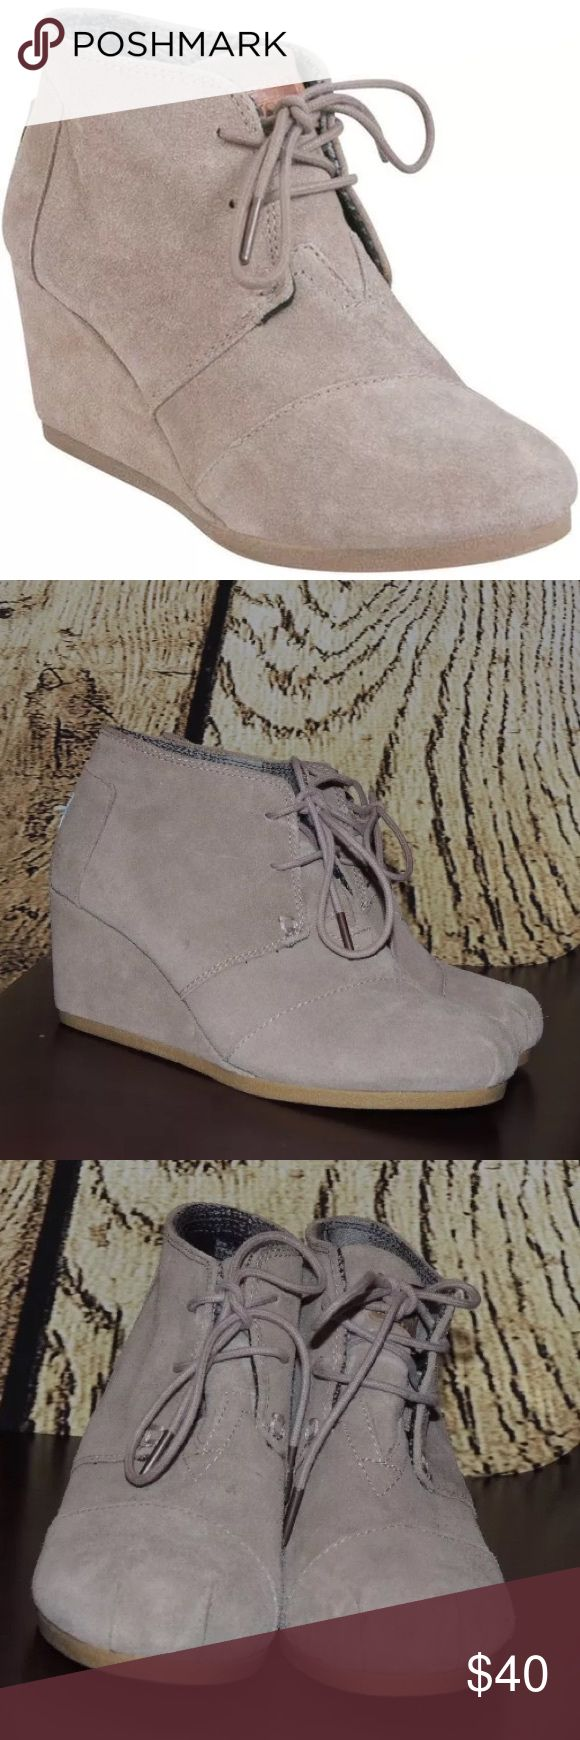 TOMS desert wedge taupe suede ankle booties I am selling these super cute and trendy TOMS desert wedge taupe suede ankle booties! Size 6.5! Worn a few times but still in good used condition, a few dirty marks (see pictures) that could easily be cleaned with a suede shoe cleaner!! I always get so many compliments when I wear these!! TOMS Shoes Wedges